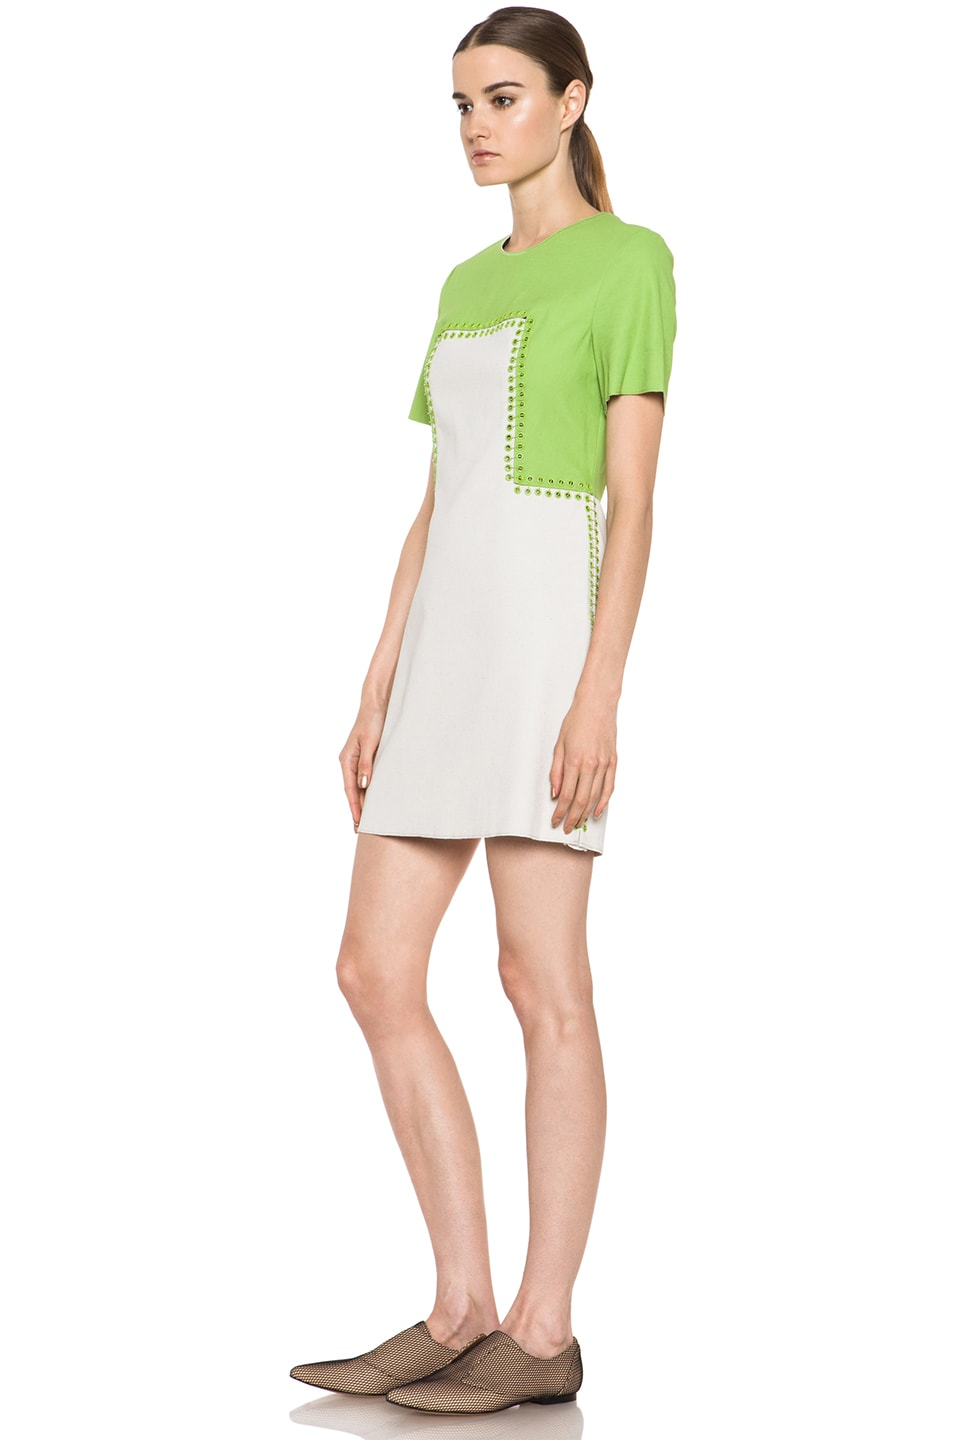 Image 2 of 3.1 phillip lim Shift Dress with Pin and Eyelet Embellishment in Avocado & Canvas